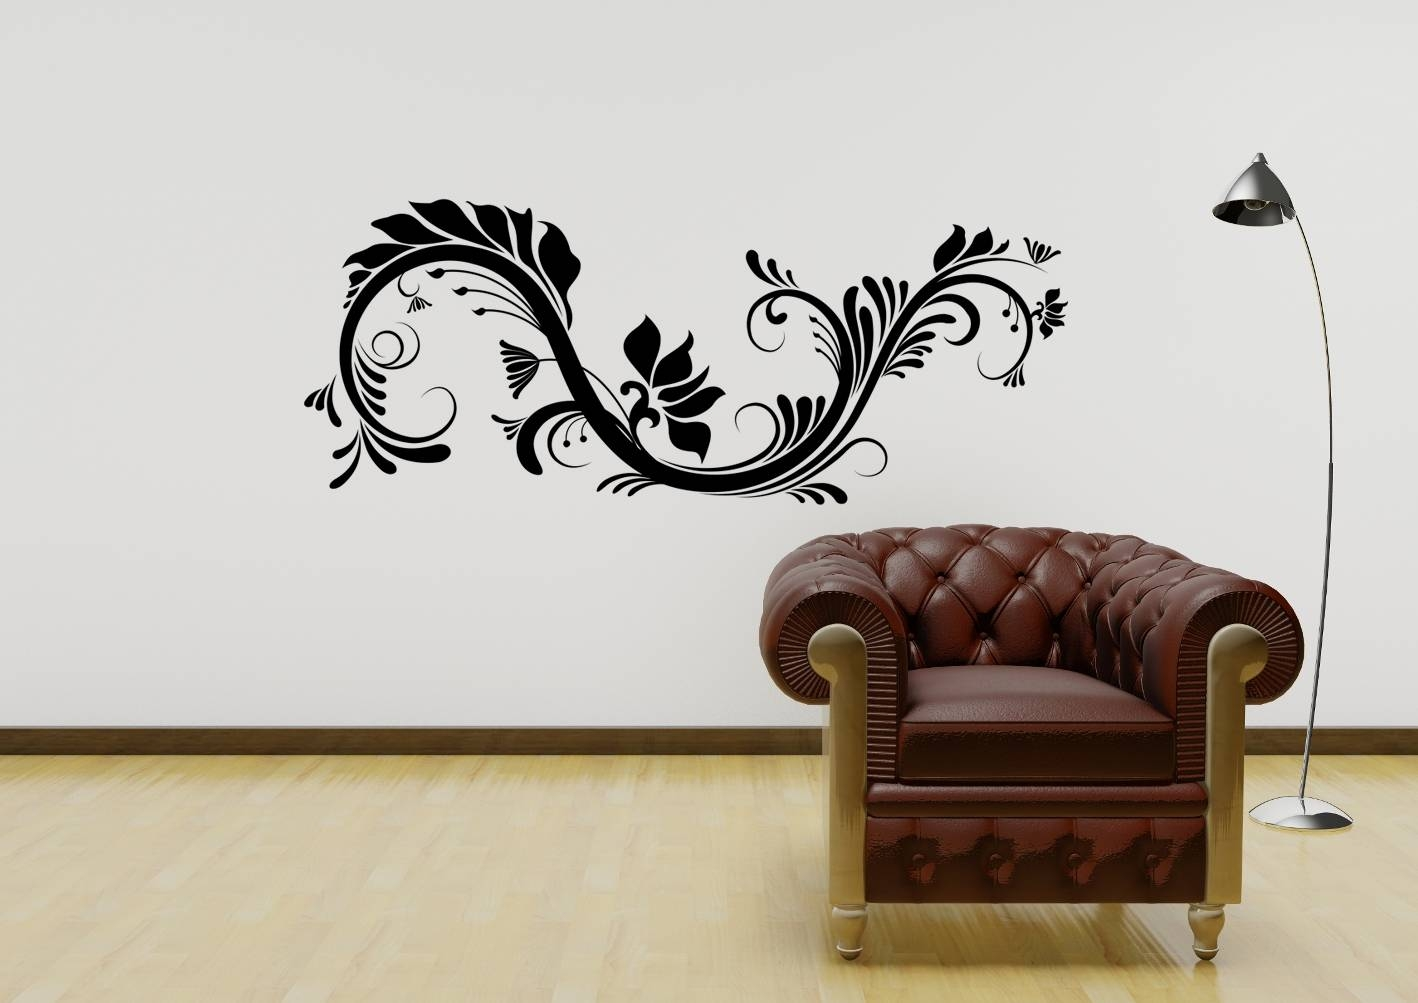 Unique And Unusual Wall Art Endearing Wall Art Design – Home Within Most Popular Unusual 3d Wall Art (View 16 of 20)